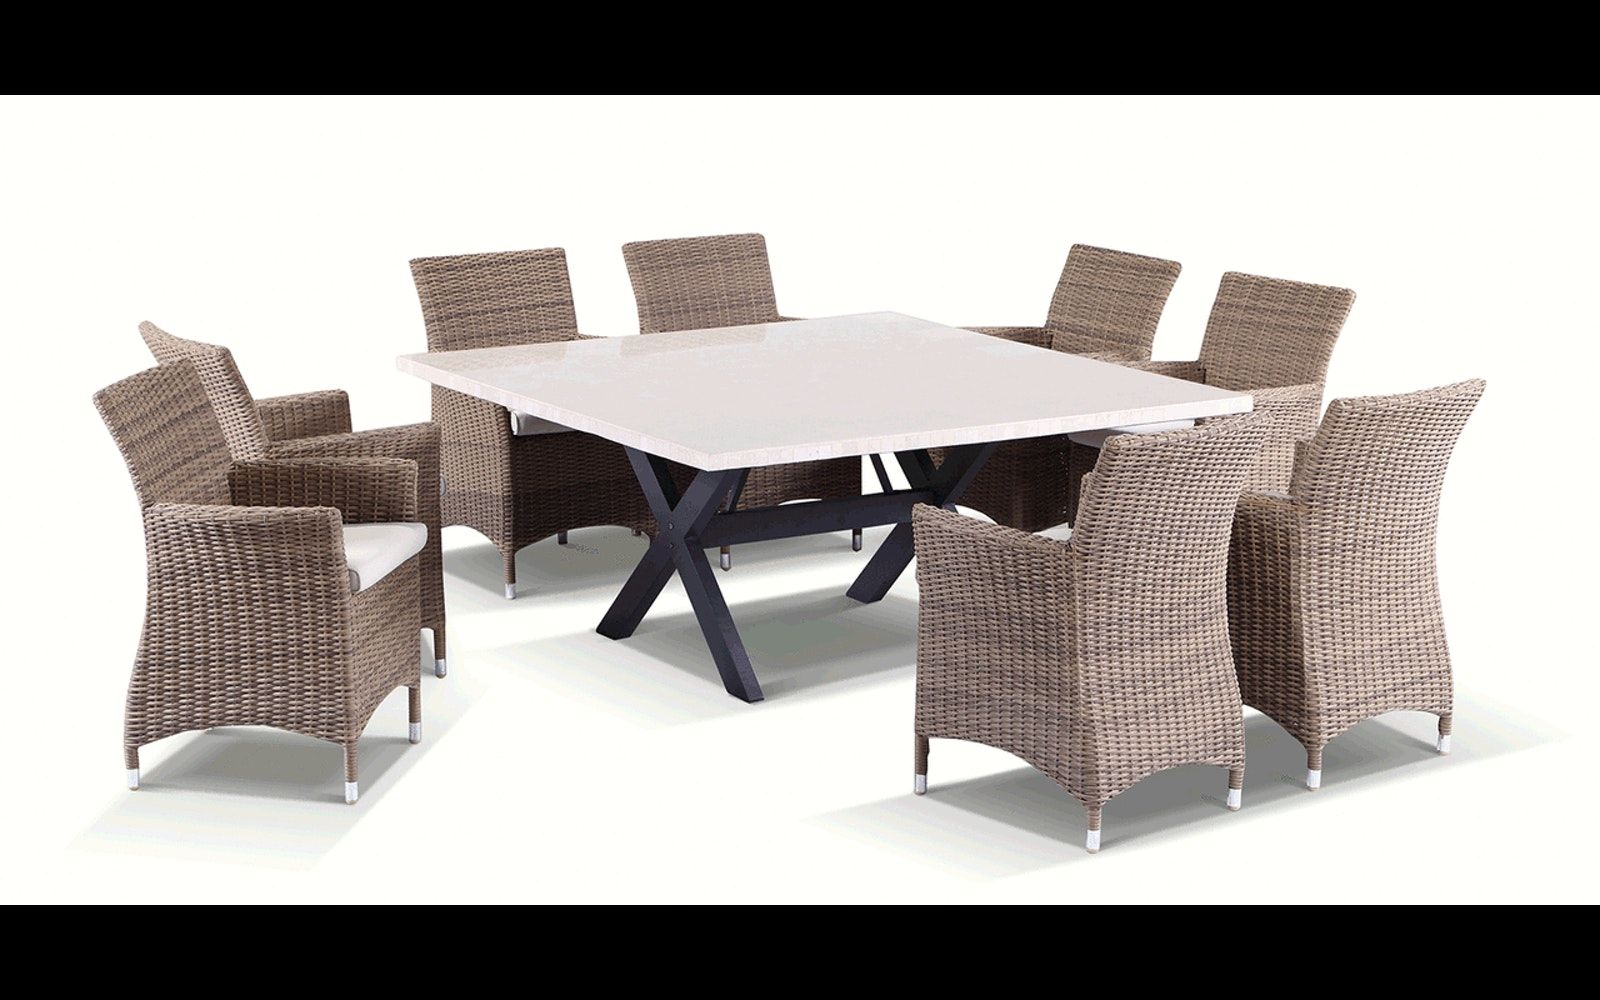 Stunning 8 Seater Square Solid Stone Top Dining Table Half Round Wicker Chairs Setting Quality F Round Wicker Chair Round Dining Table Stone Top Dining Table